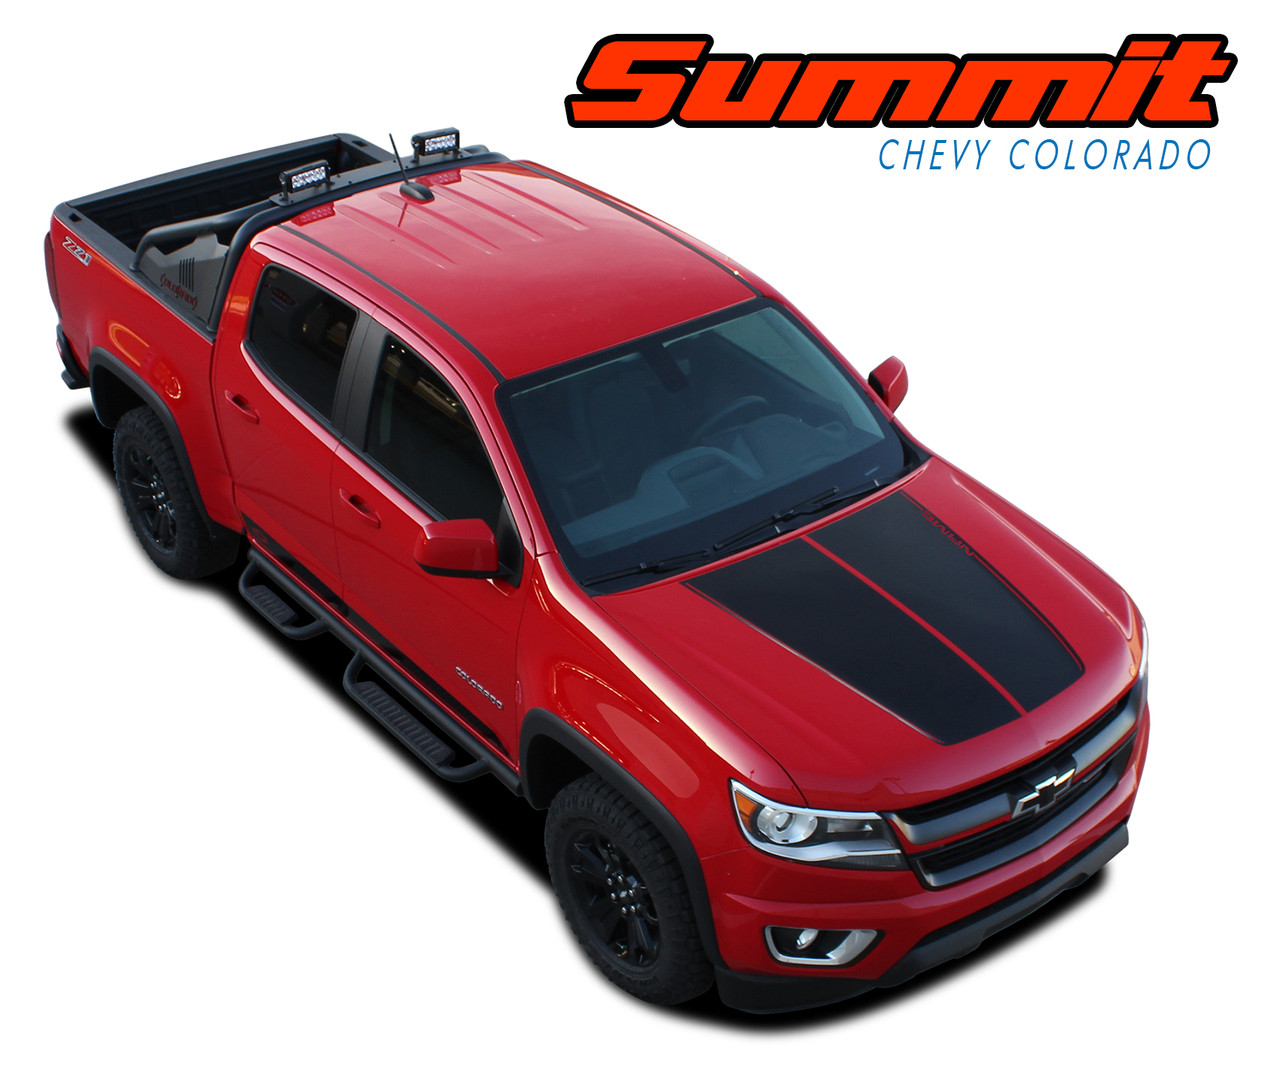 321948965883 in addition 88 082 furthermore 331037463418 together with Summit 2015 2016 2017 2018 Chevy Colorado Hood Dual Racing Stripe Factory Oem Style Package Vinyl Graphic Decal Kit also 390512111251. on 69 camaro truck